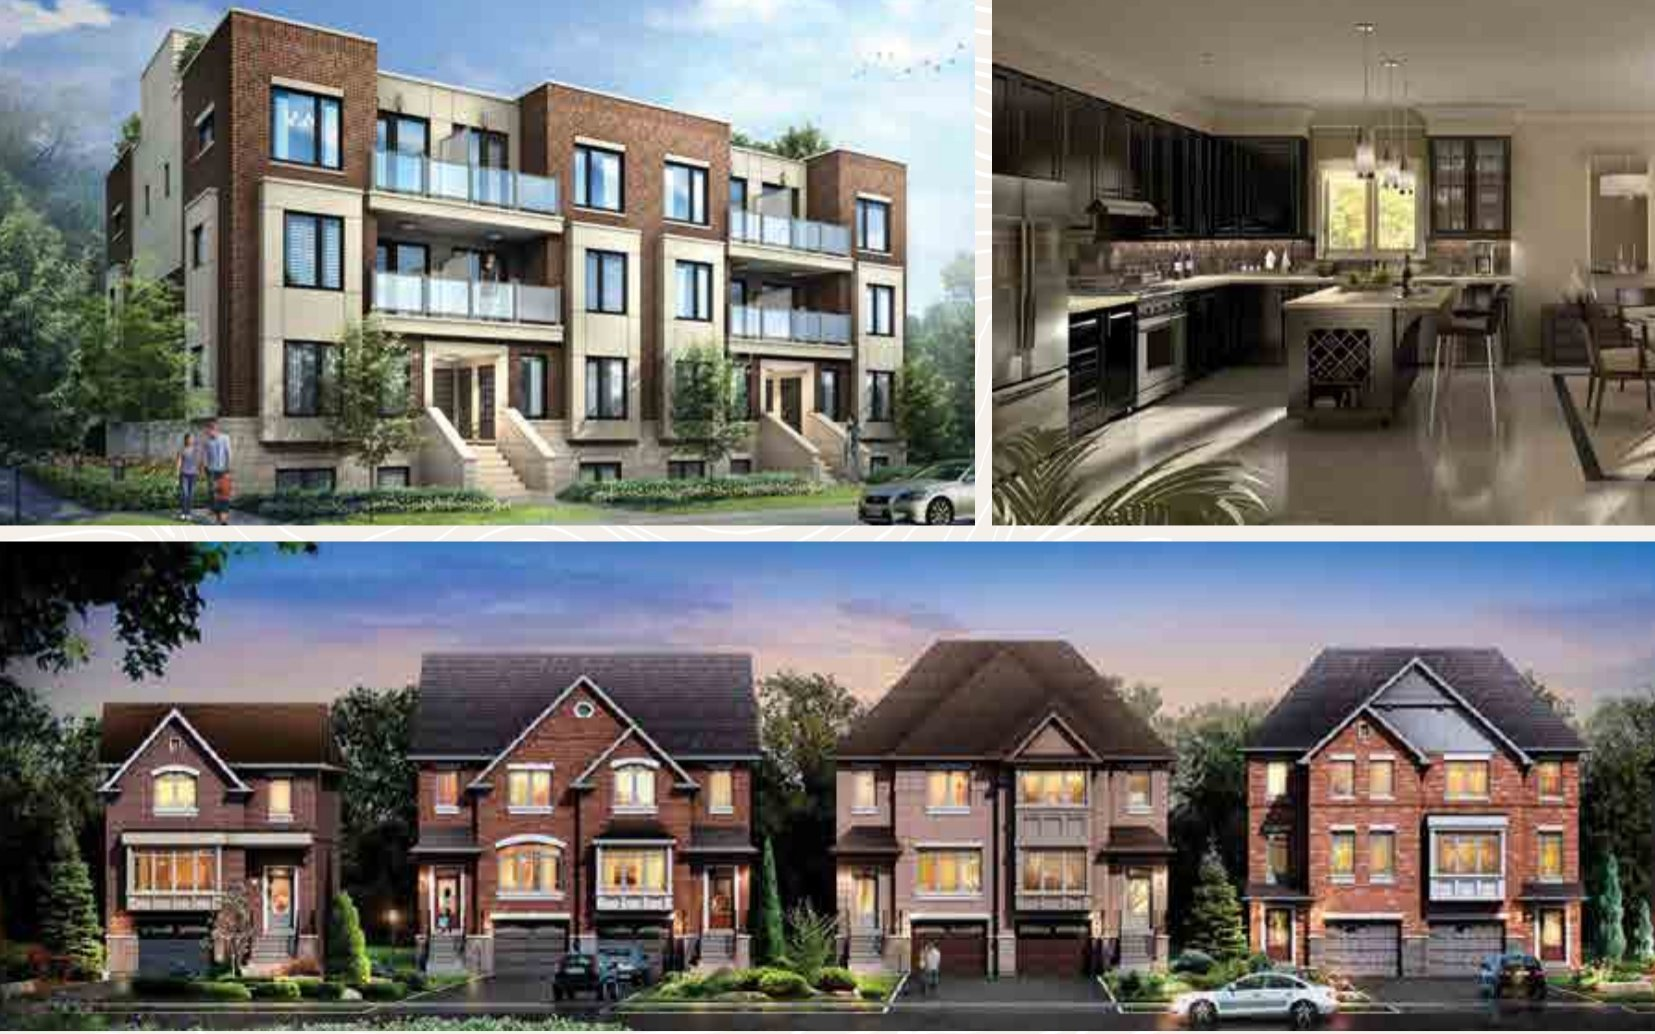 New Town Homes in Pickering Ontario